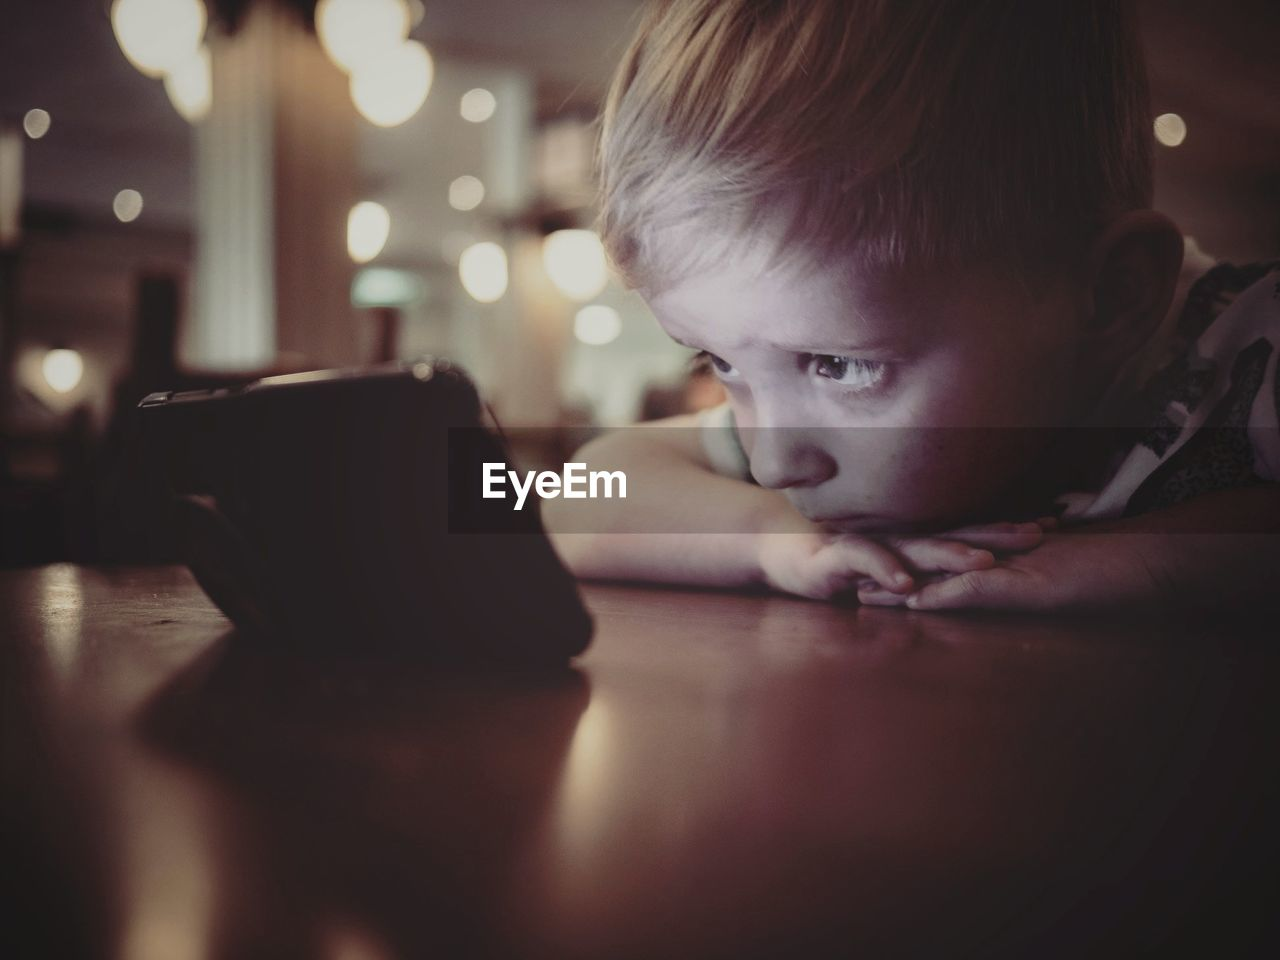 8close-Up Of Boy Using Phone On Table